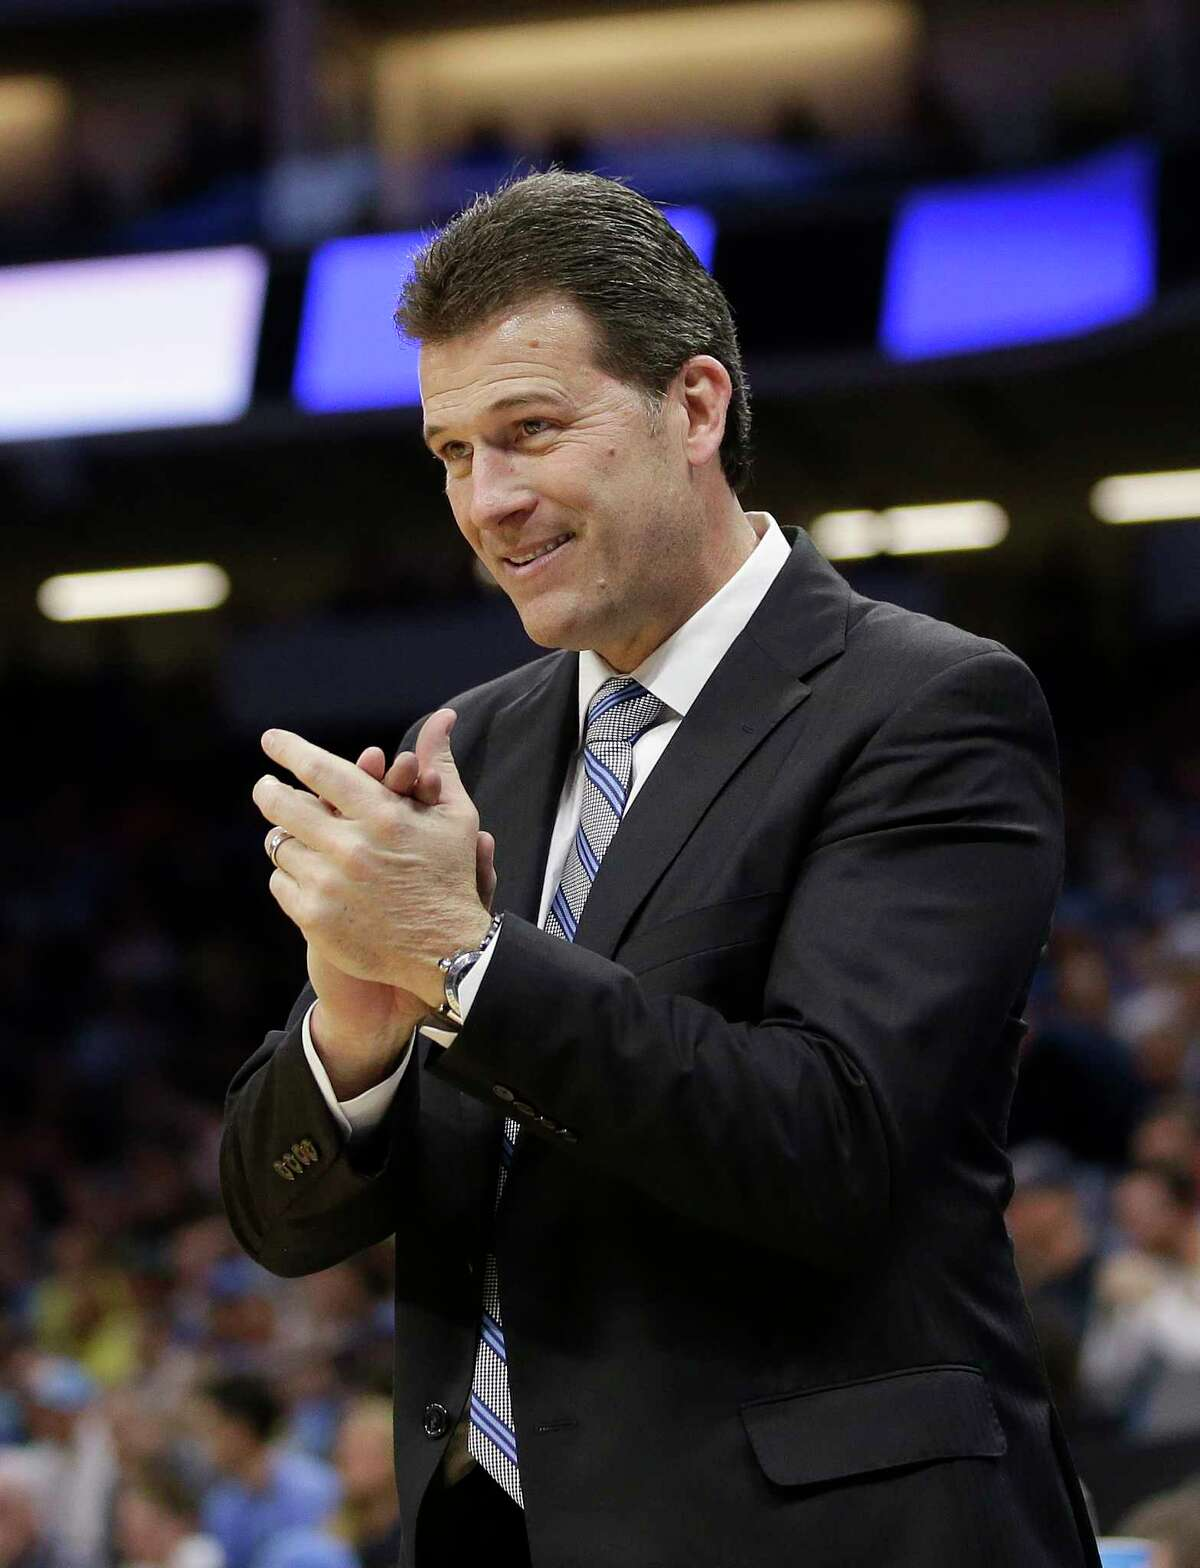 UCLA head coach Steve Alford applauds his team in the closing moments of their 79-67 win over Cincinnati in a second-round game of the NCAA men's college basketball tournament in Sacramento, Calif., Sunday, March 19, 2017. (AP Photo/Rich Pedroncelli)